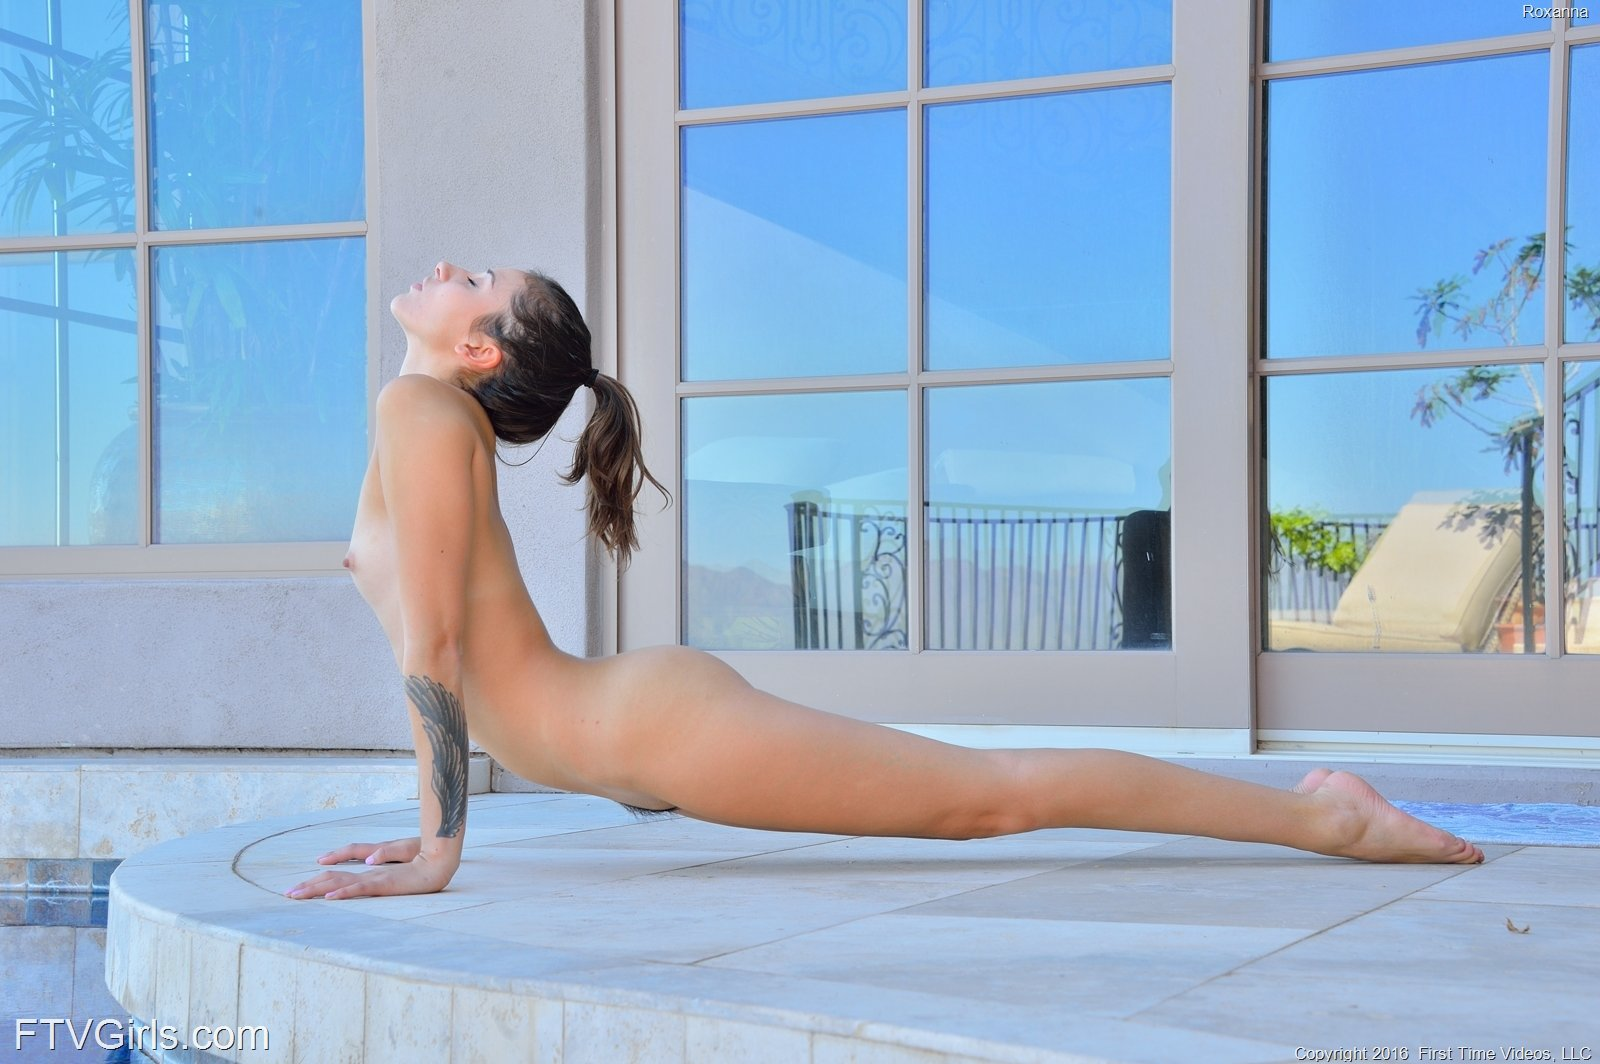 Roxanna In A Nude Yoga Finish By Ftv Girls 16 Photos -4554